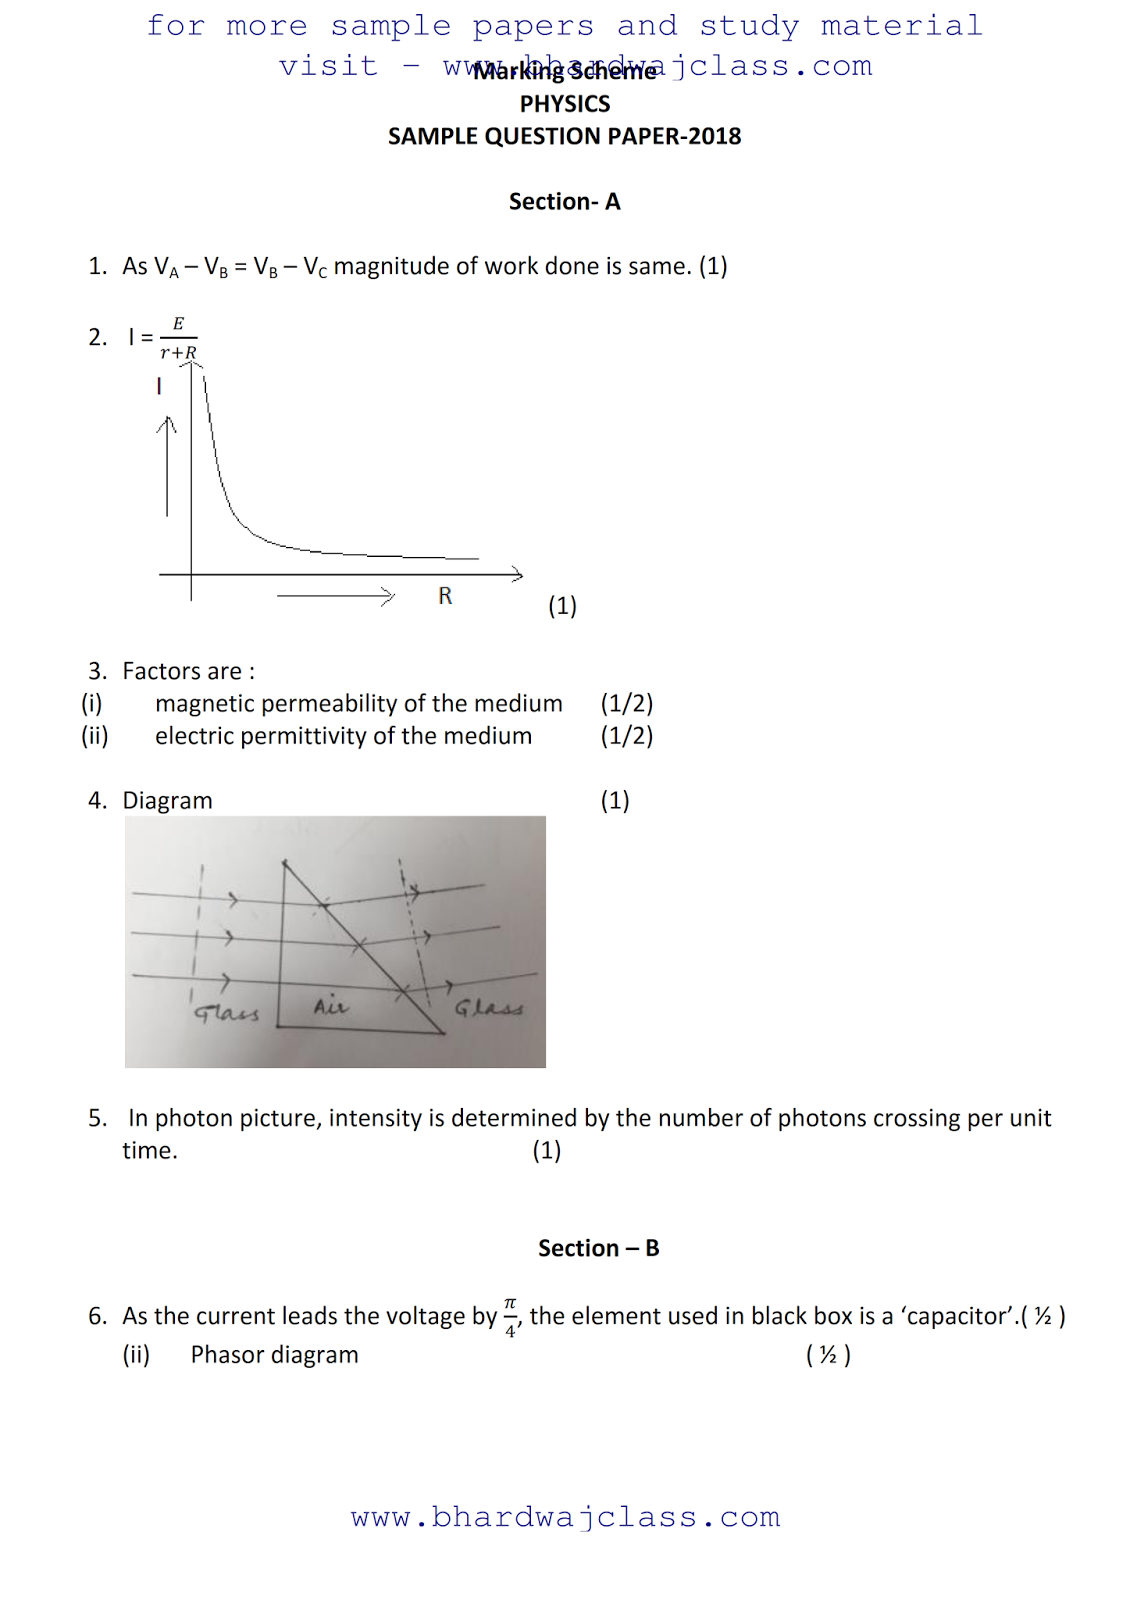 PHYSICS SAMPLE PAPER SOLUTION 2017-18